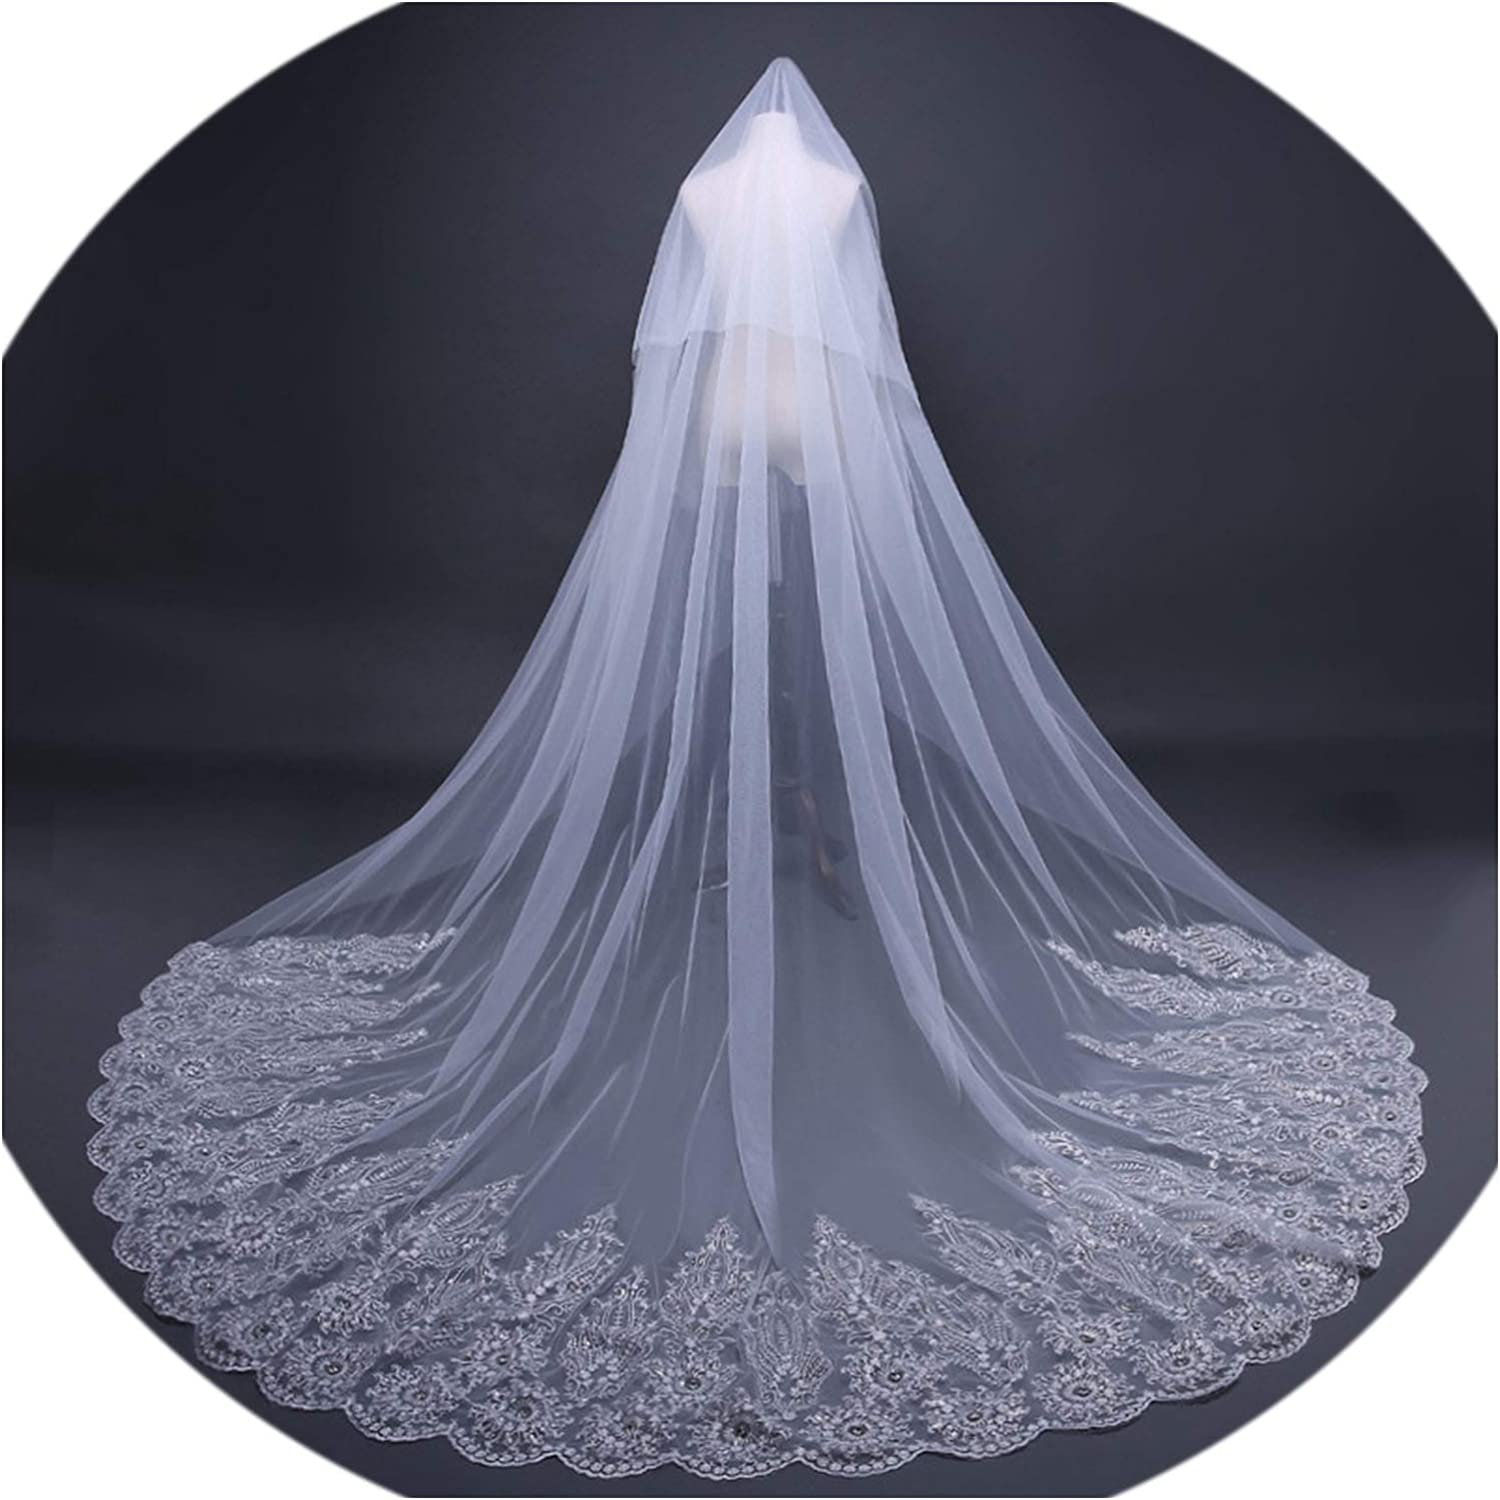 3M Long Wedding Veil with Comb Two Layers Beaded Lace Appliques Edge Soft Tulle Wedding Accessories,Ivory,300cm